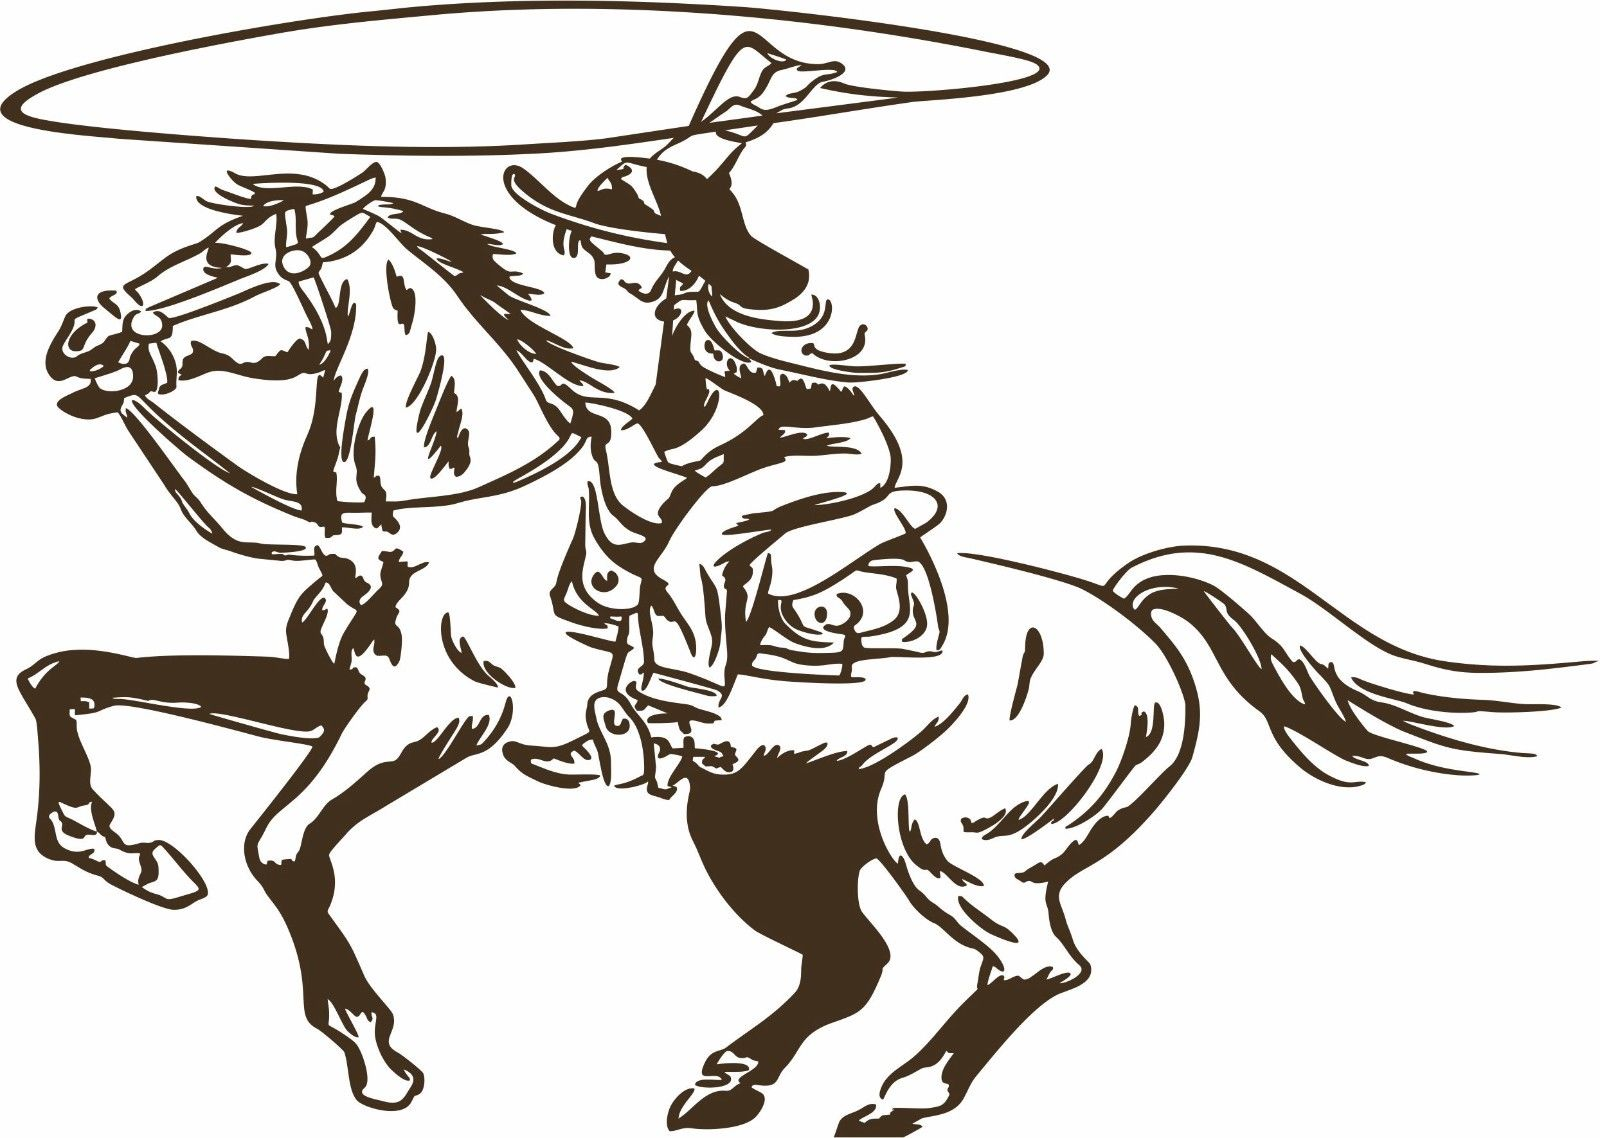 "Cowboy Cowgirl Horse Roping Rodeo Western Window Laptop Vinyl Decal Sticker - 13"" Long Edge"